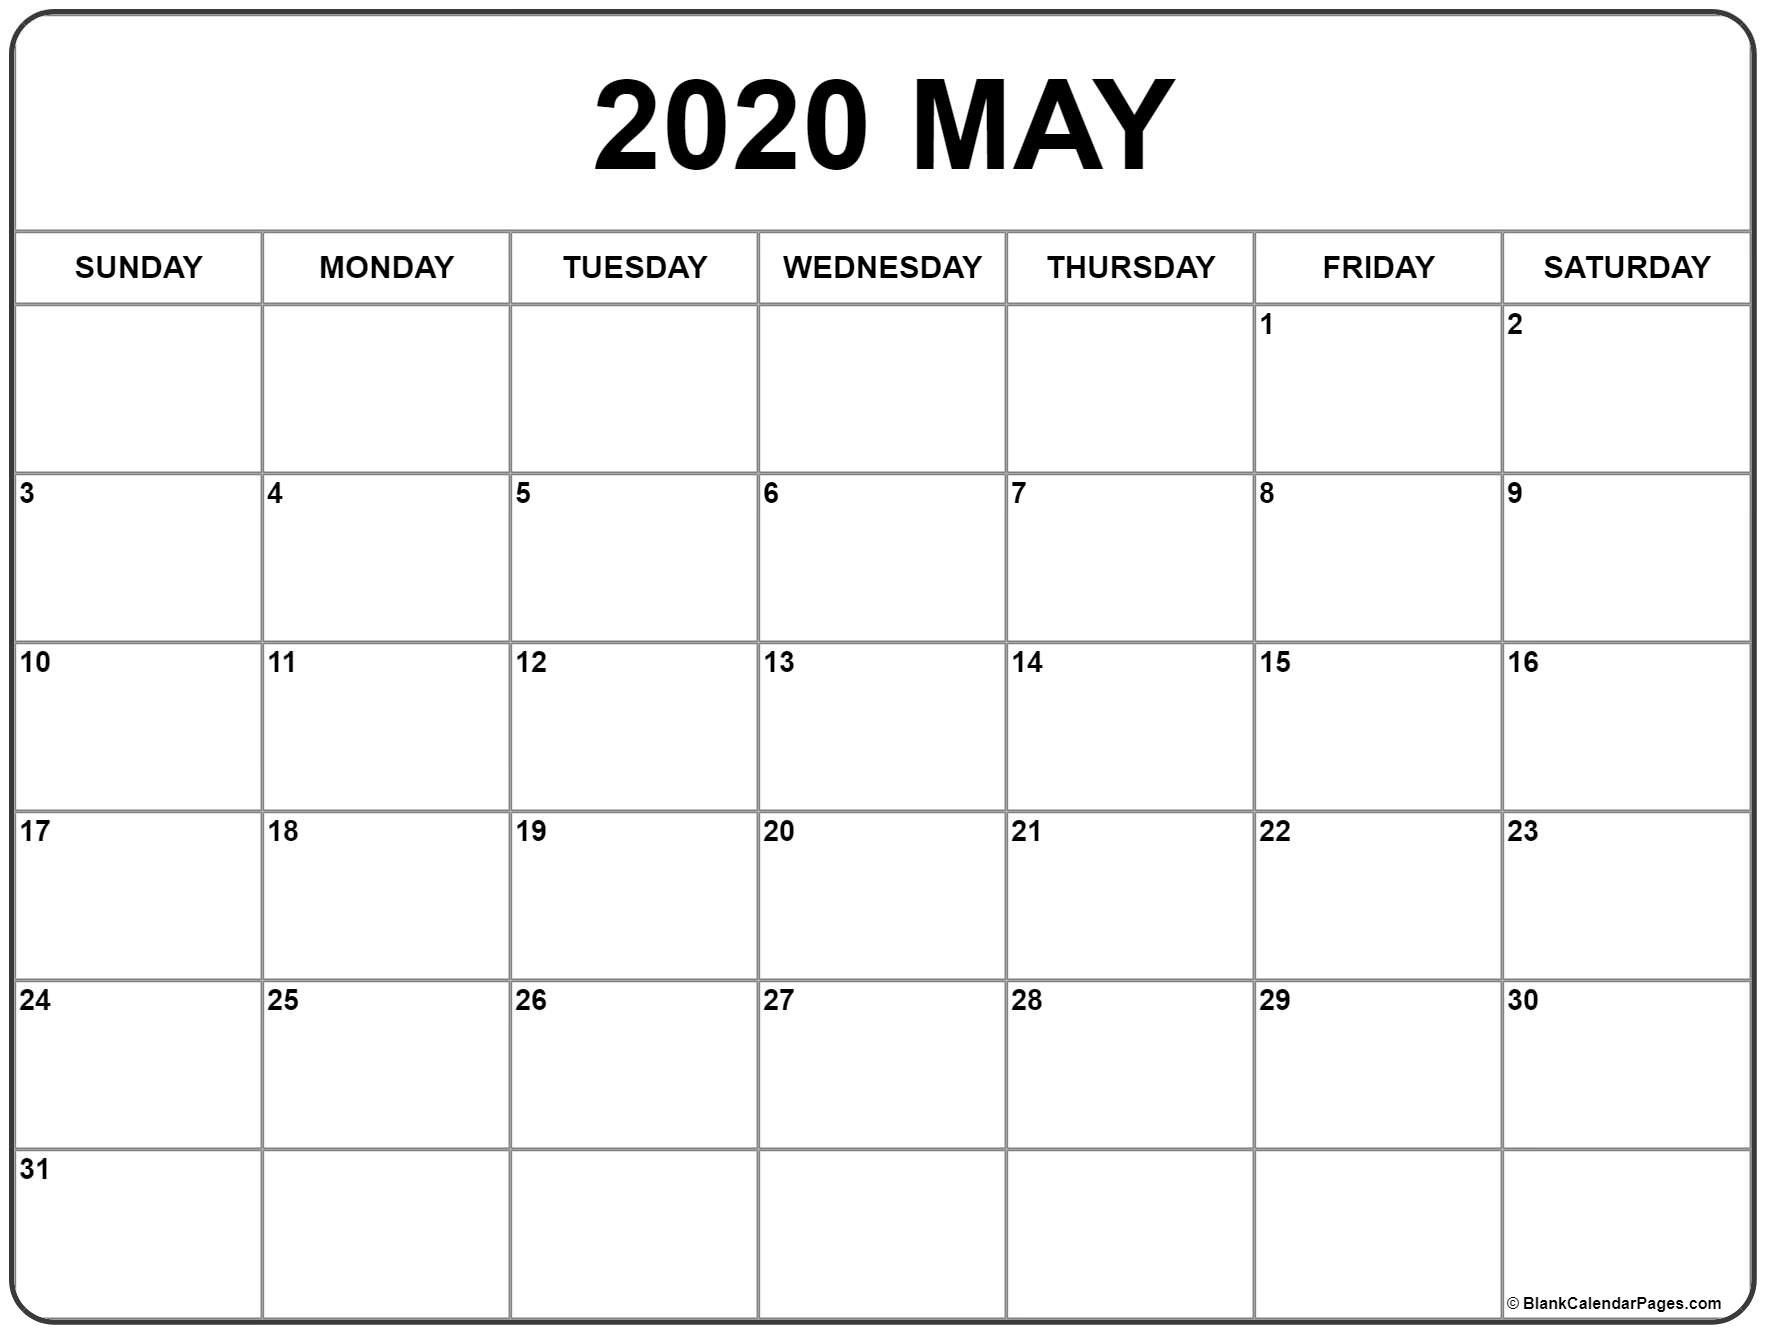 Pin On Origami with Free Editable 2020 Calendars